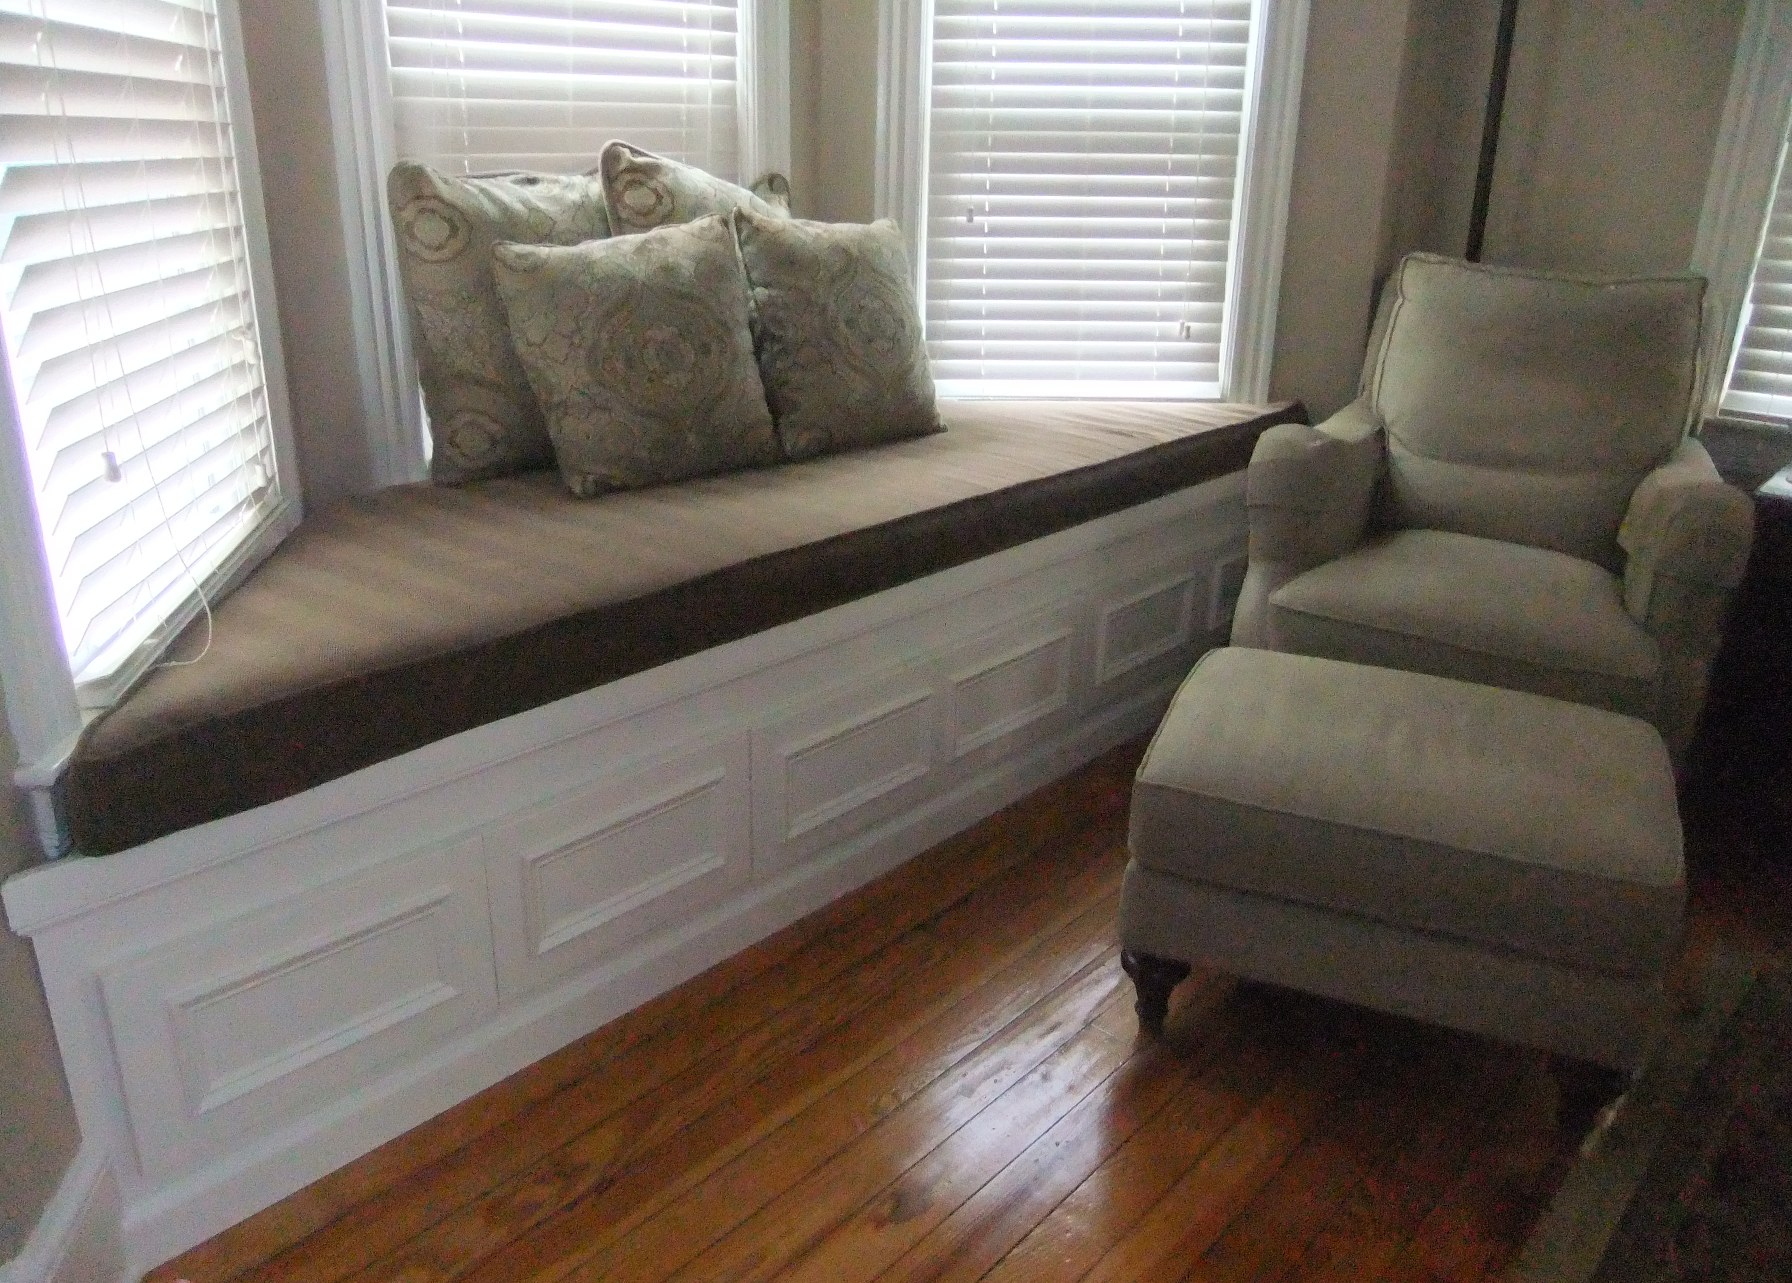 Amazing Window Seats With Storage For Bay Windows Dark Upholstery And Comfy Cushion Together